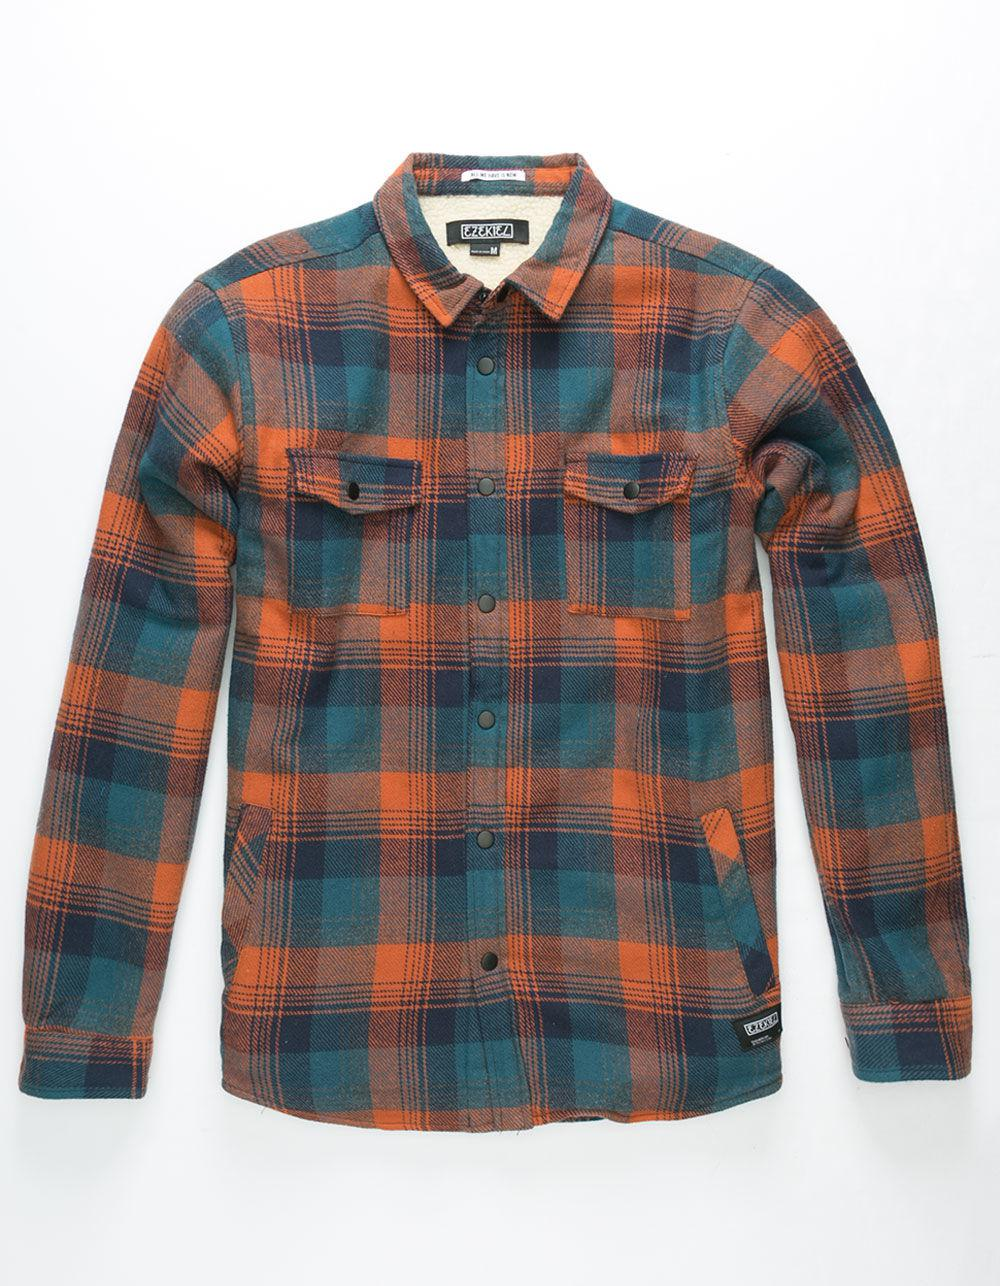 Find great deals on eBay for mens flannel coats. Shop with confidence.